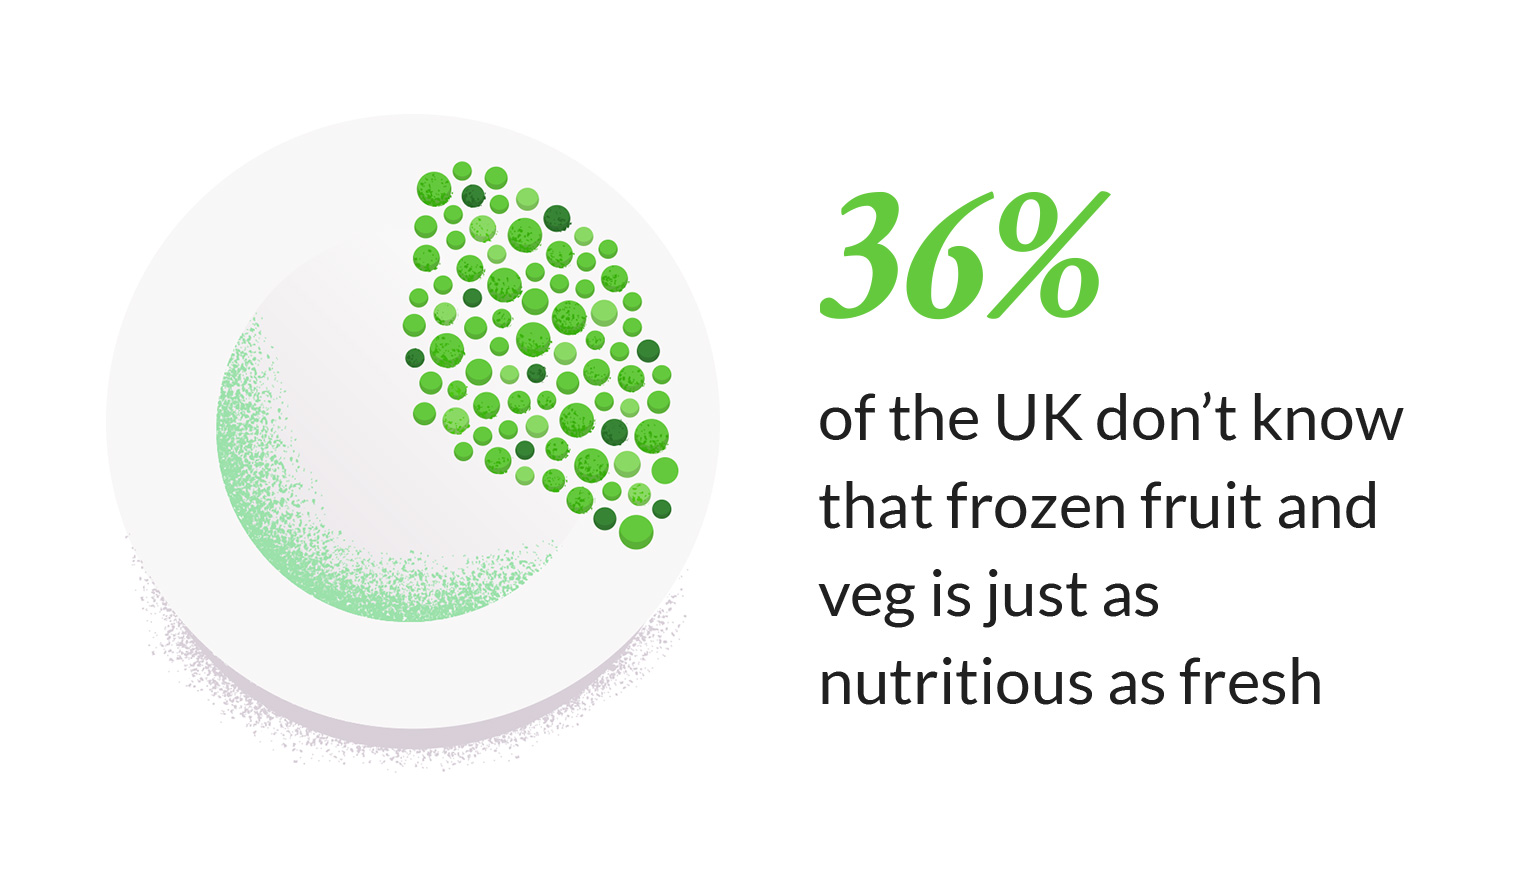 Frozen fruit and veg are just as nutritious as fresh veg